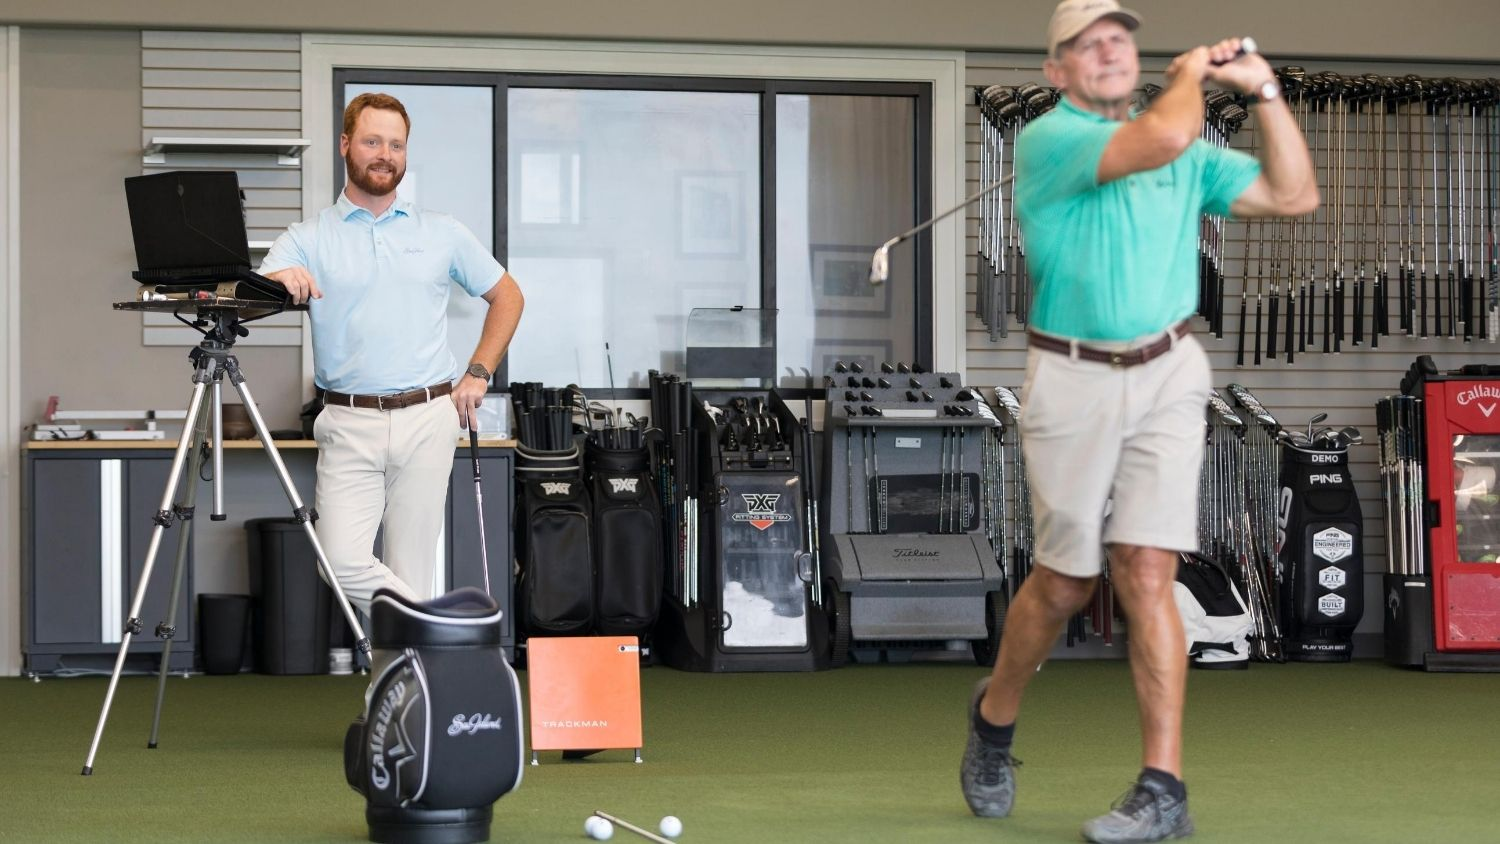 Ben Freundt Fitting a Club - PGA Golf Management - Parks Recreation and Tourism Management NC State